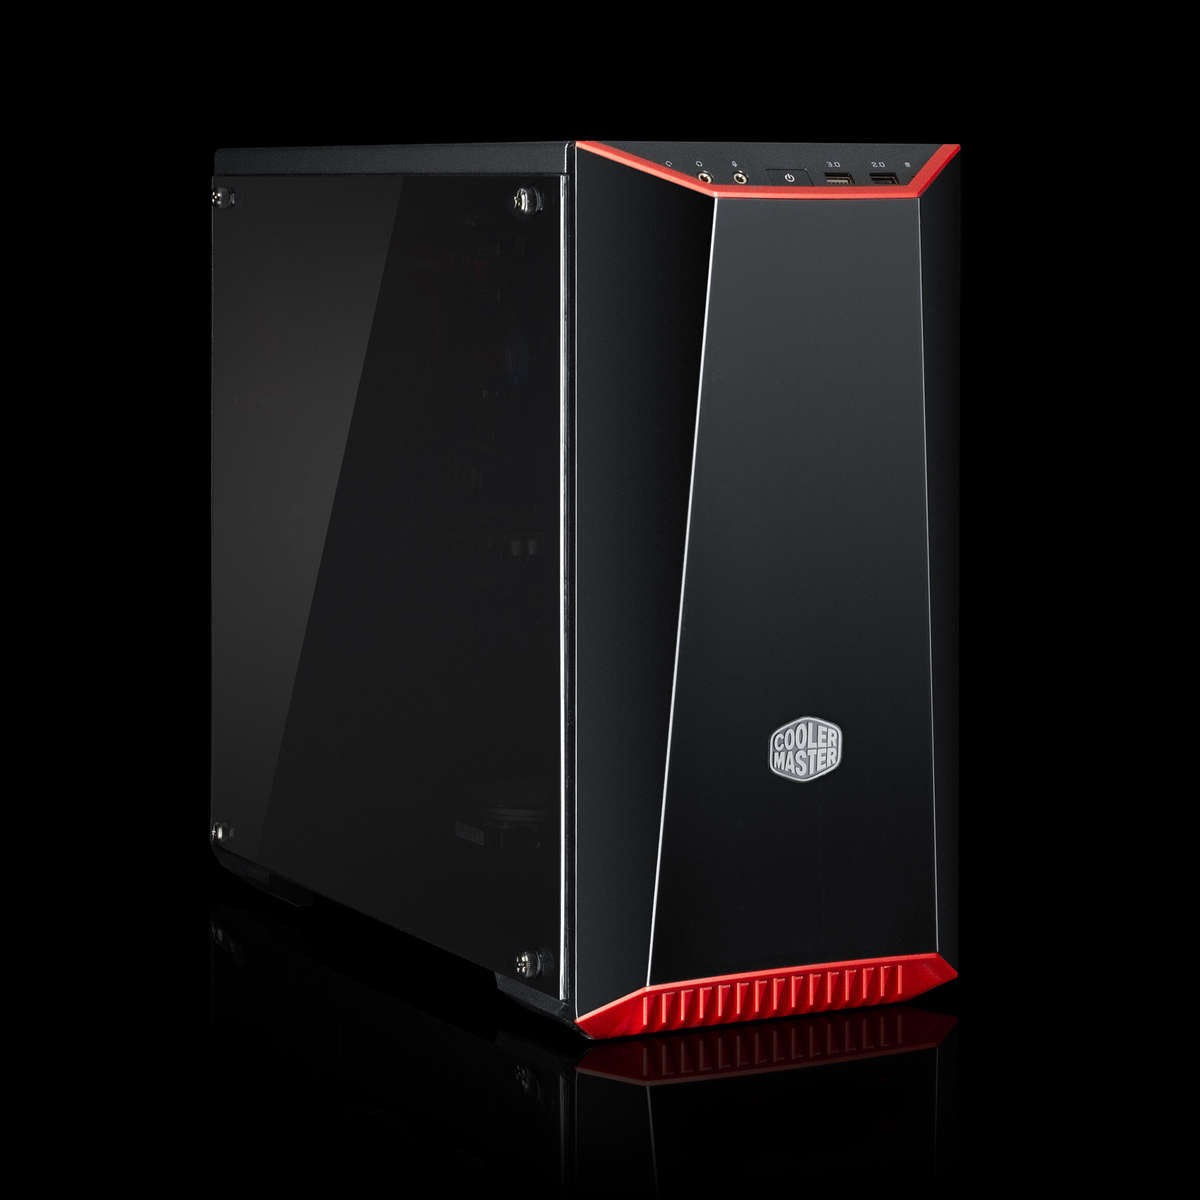 Chillblast Fusion Scimitar Ryzen 5 3600 GTX 1660 Ti Gaming PC